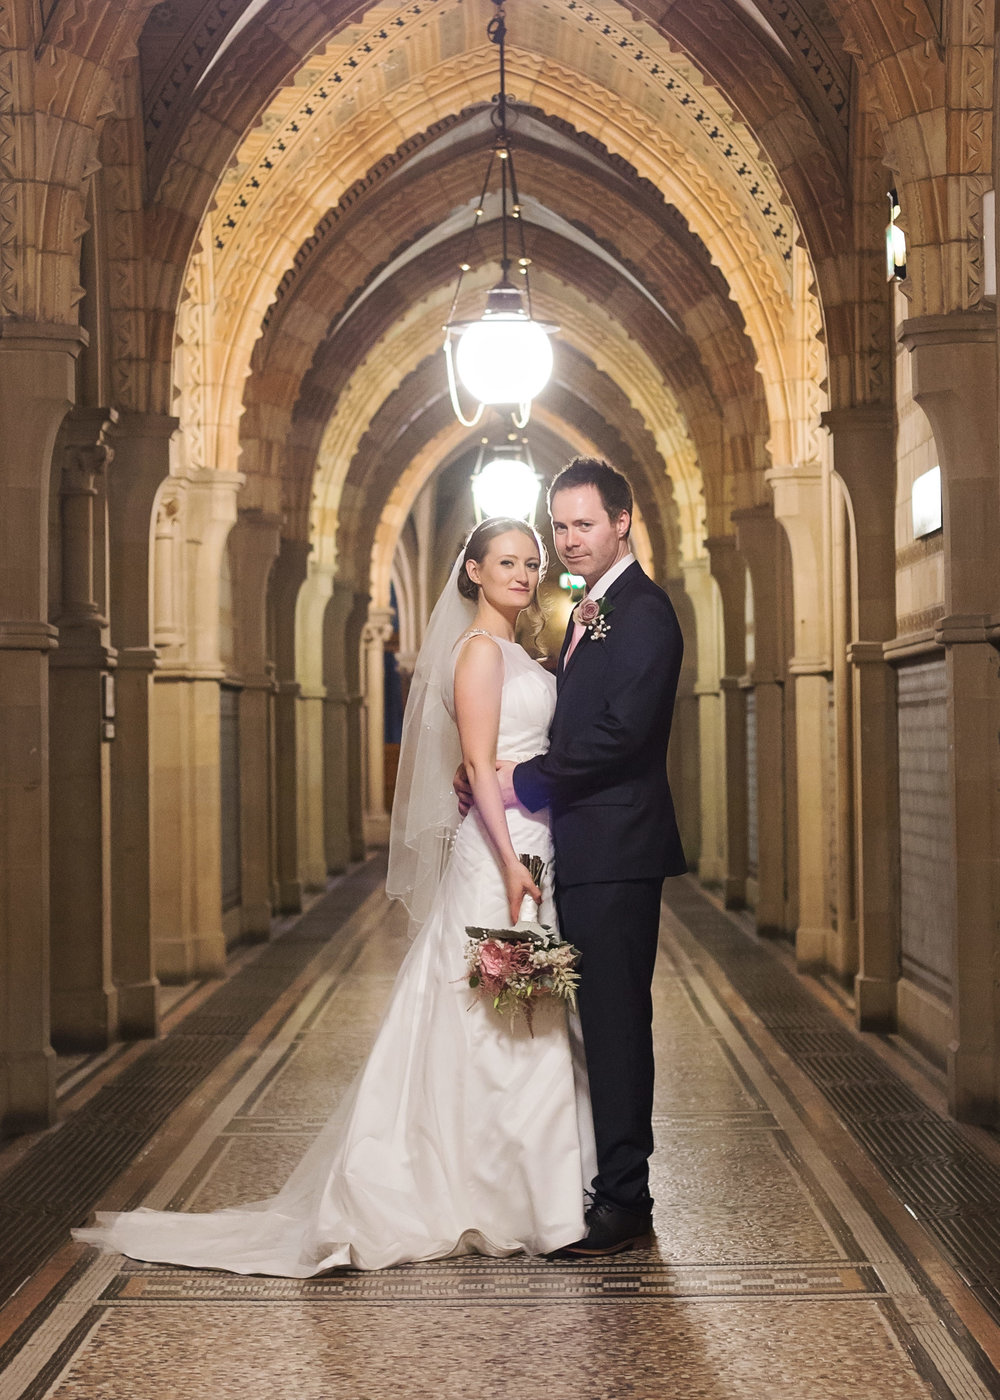 The bride and groom portrait at Manchester Town Hall- Relaxed wedding photographer